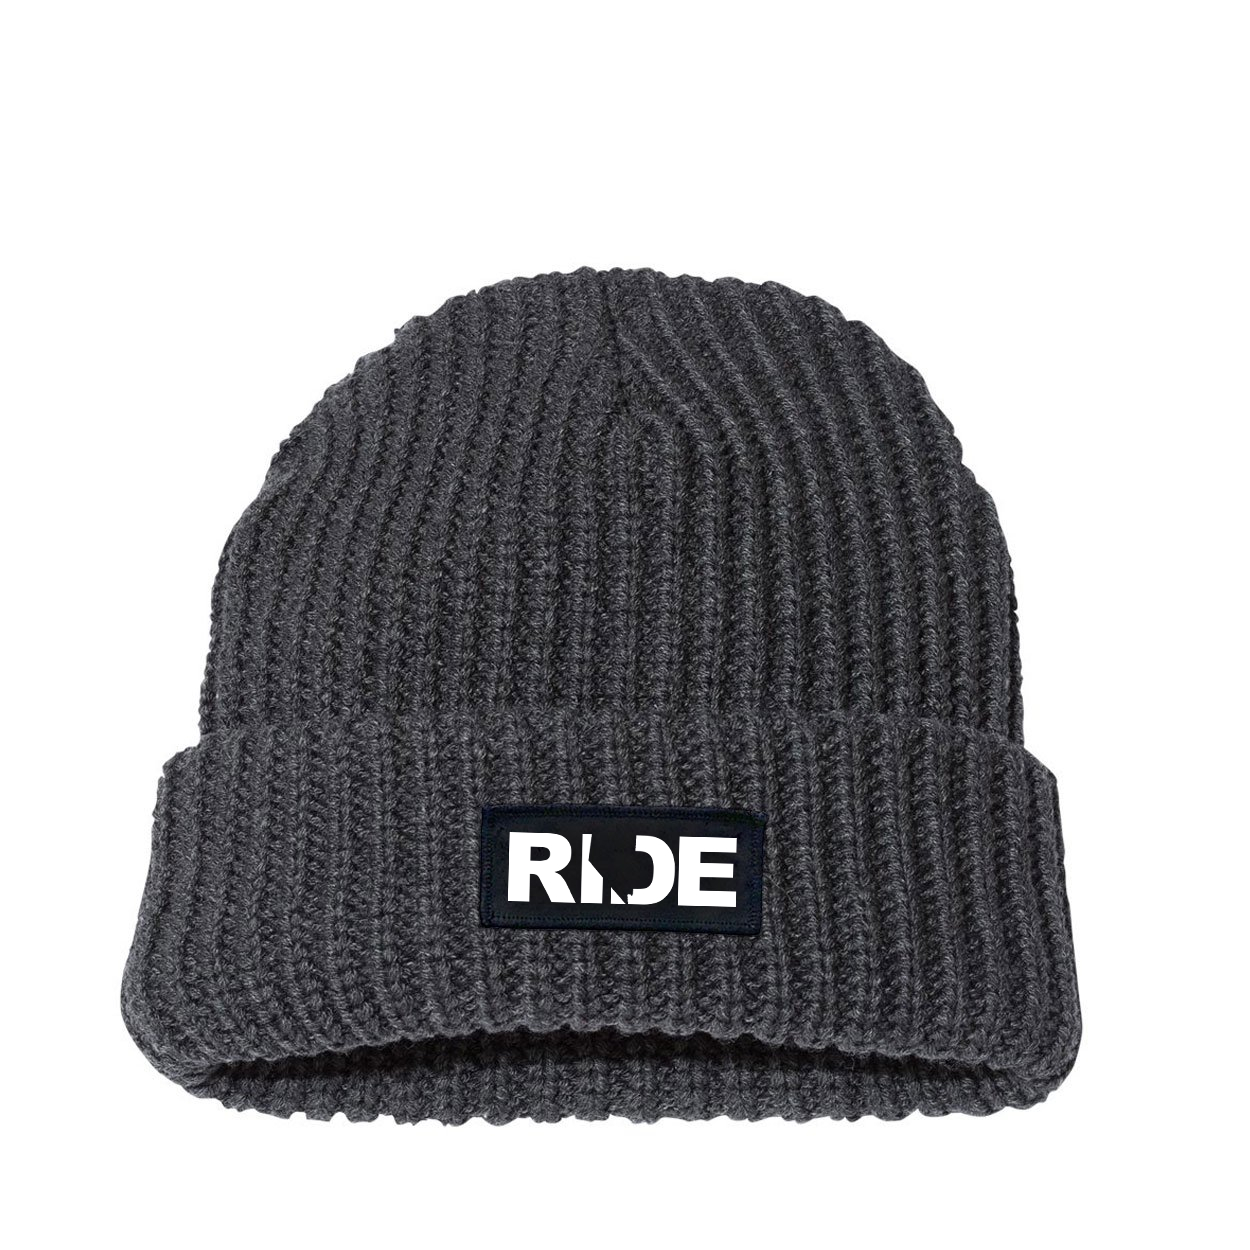 Ride Nevada Night Out Woven Patch Roll Up Jumbo Chunky Knit Beanie Charcoal (White Logo)